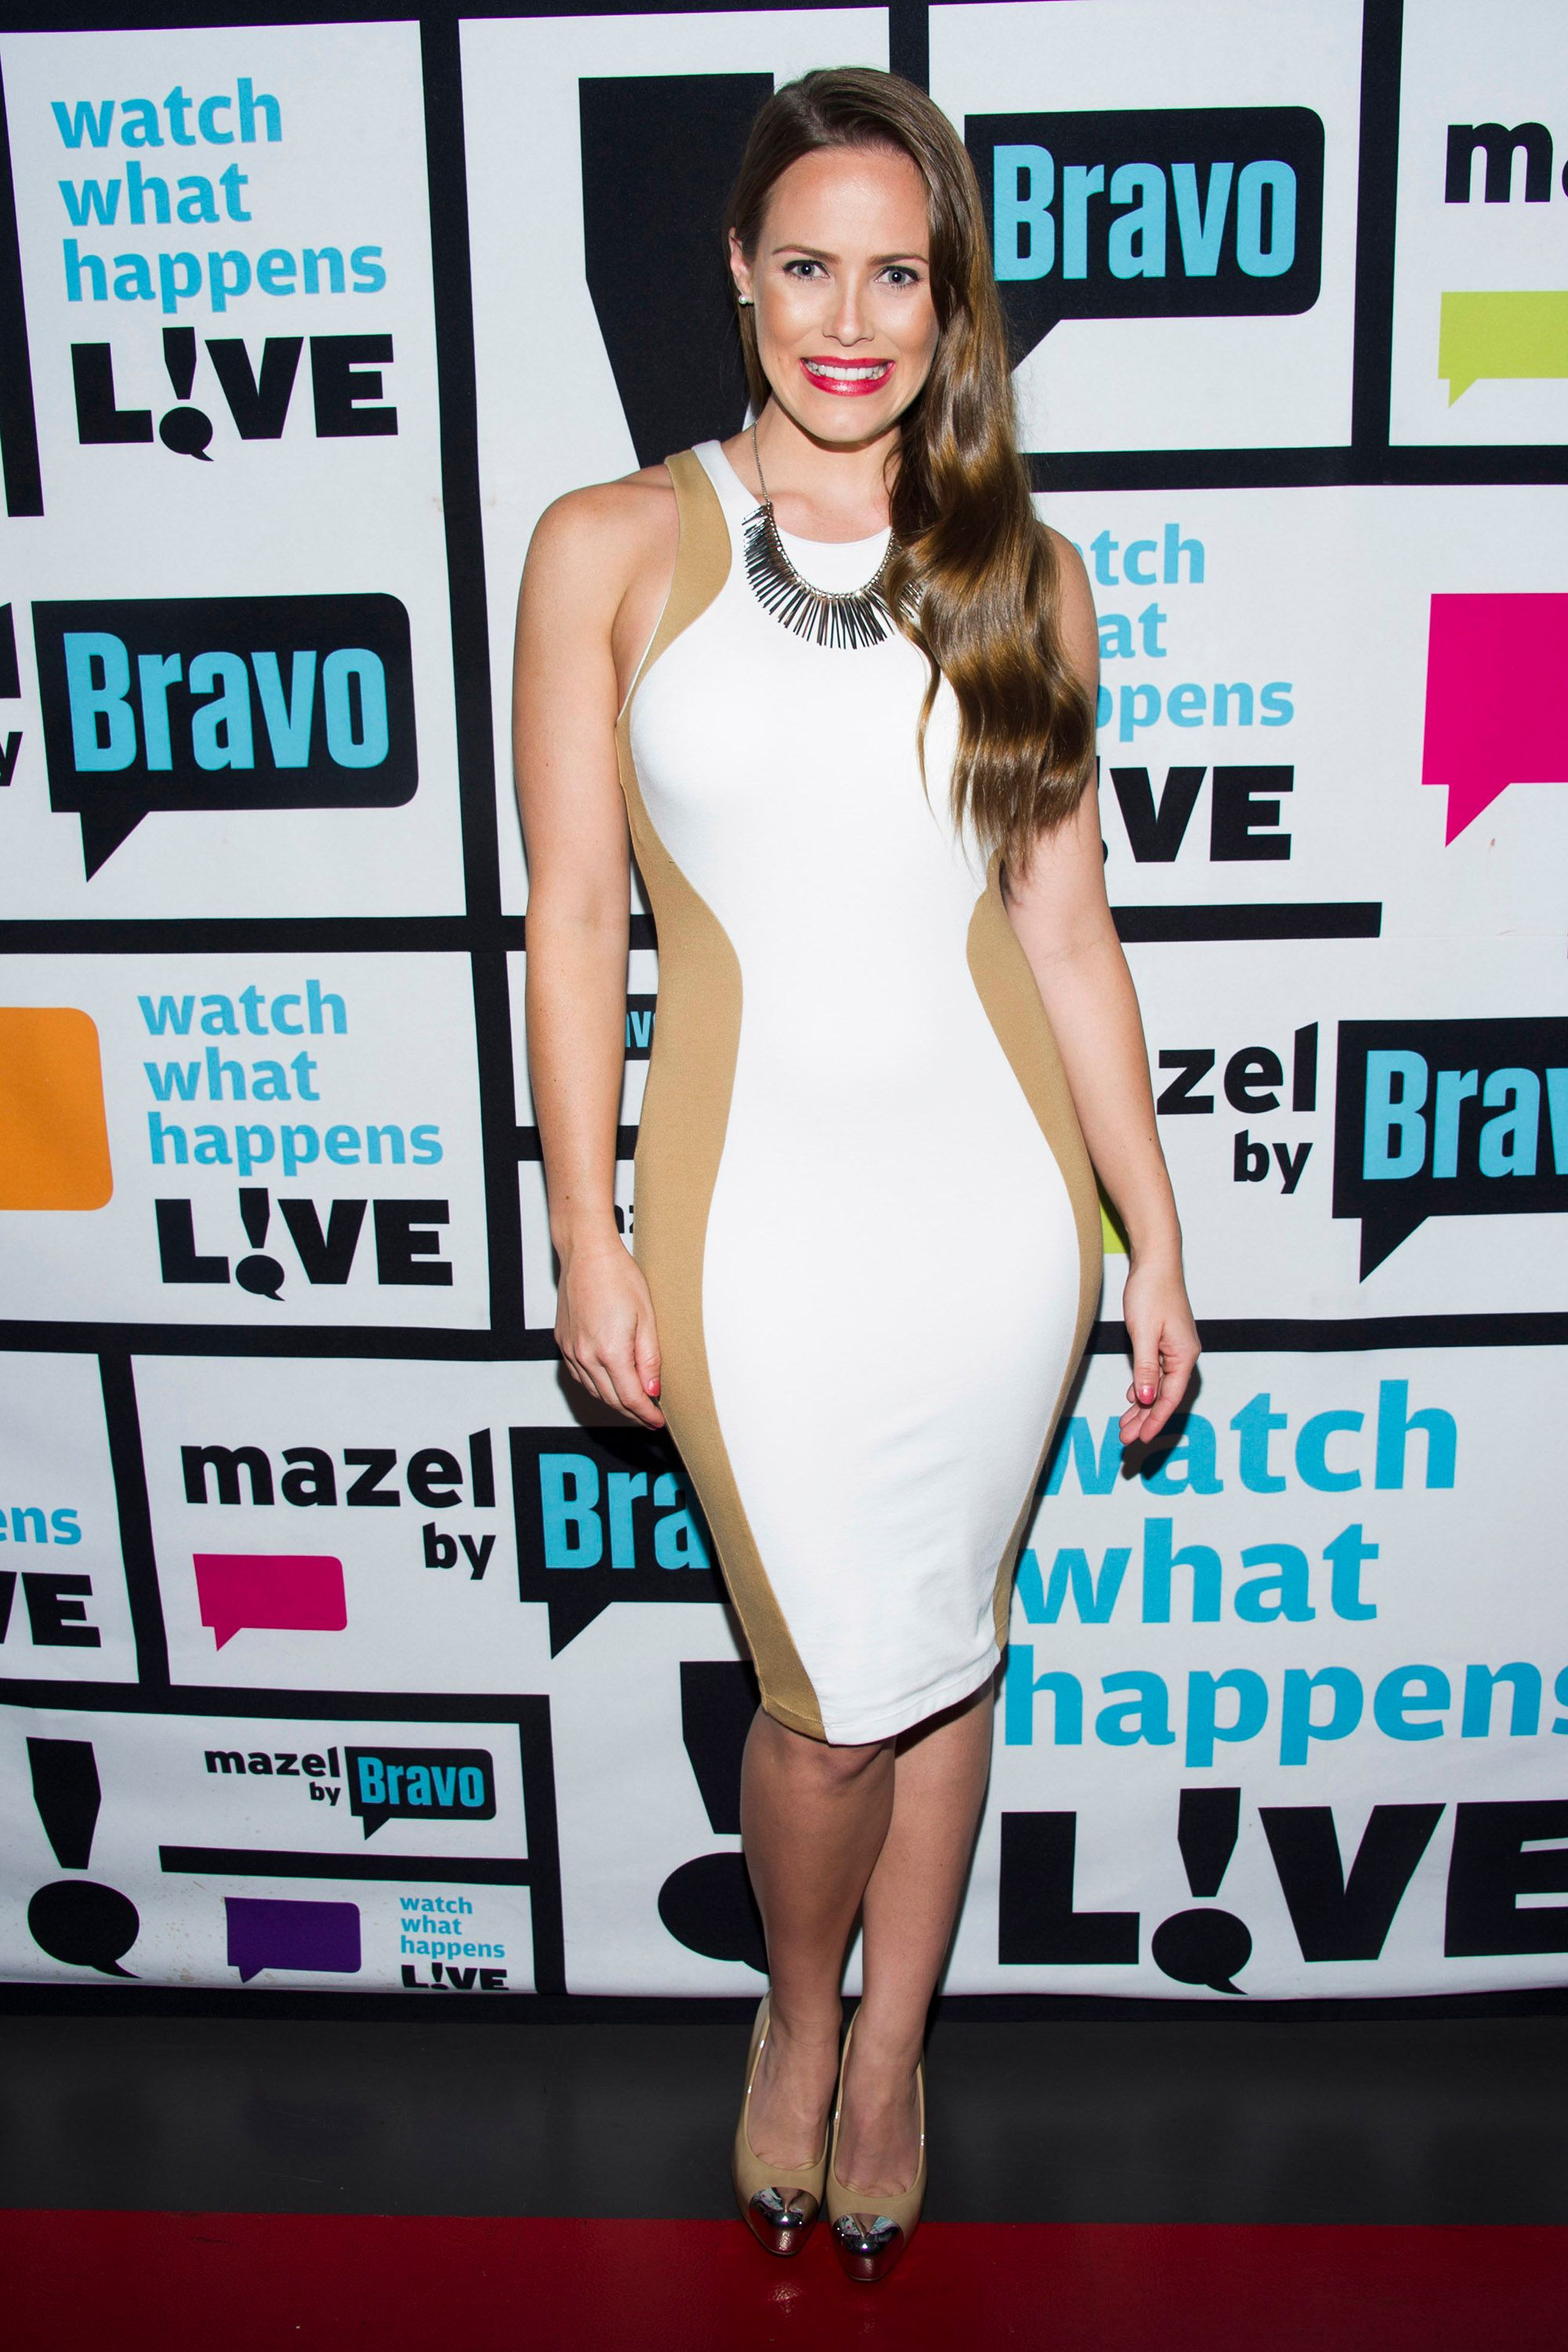 """Kara Keough on """"Watch What Happens Live,"""" season 10. 